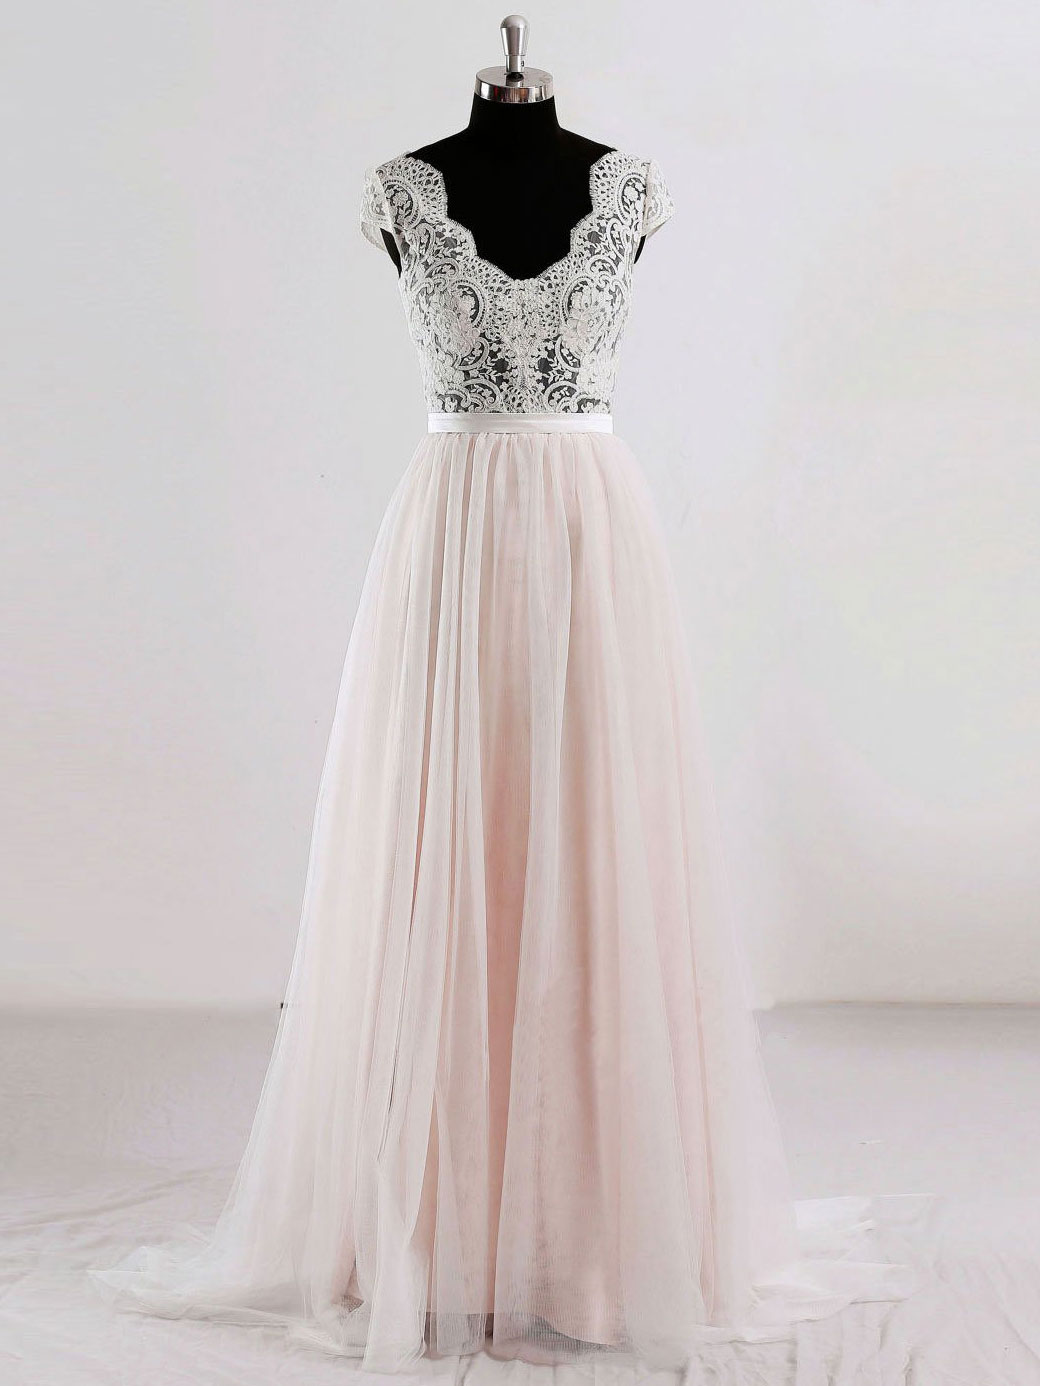 Pretty Princess Lace Prom Dress With Mesh Skirt Floor Length Light ...